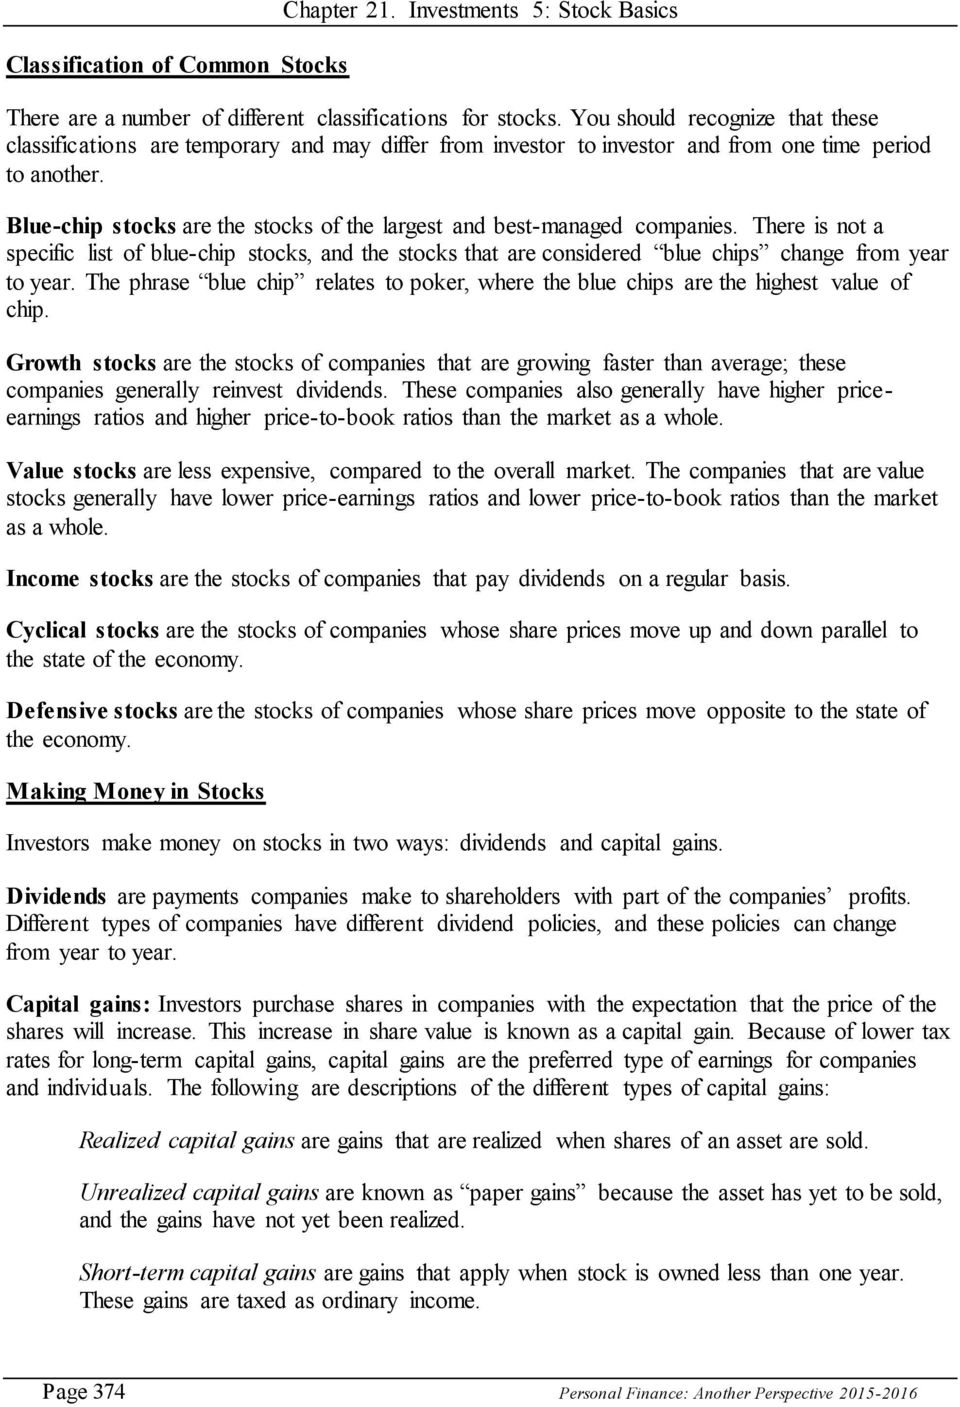 21  Investments 5: Stock (or Equity) Basics - PDF